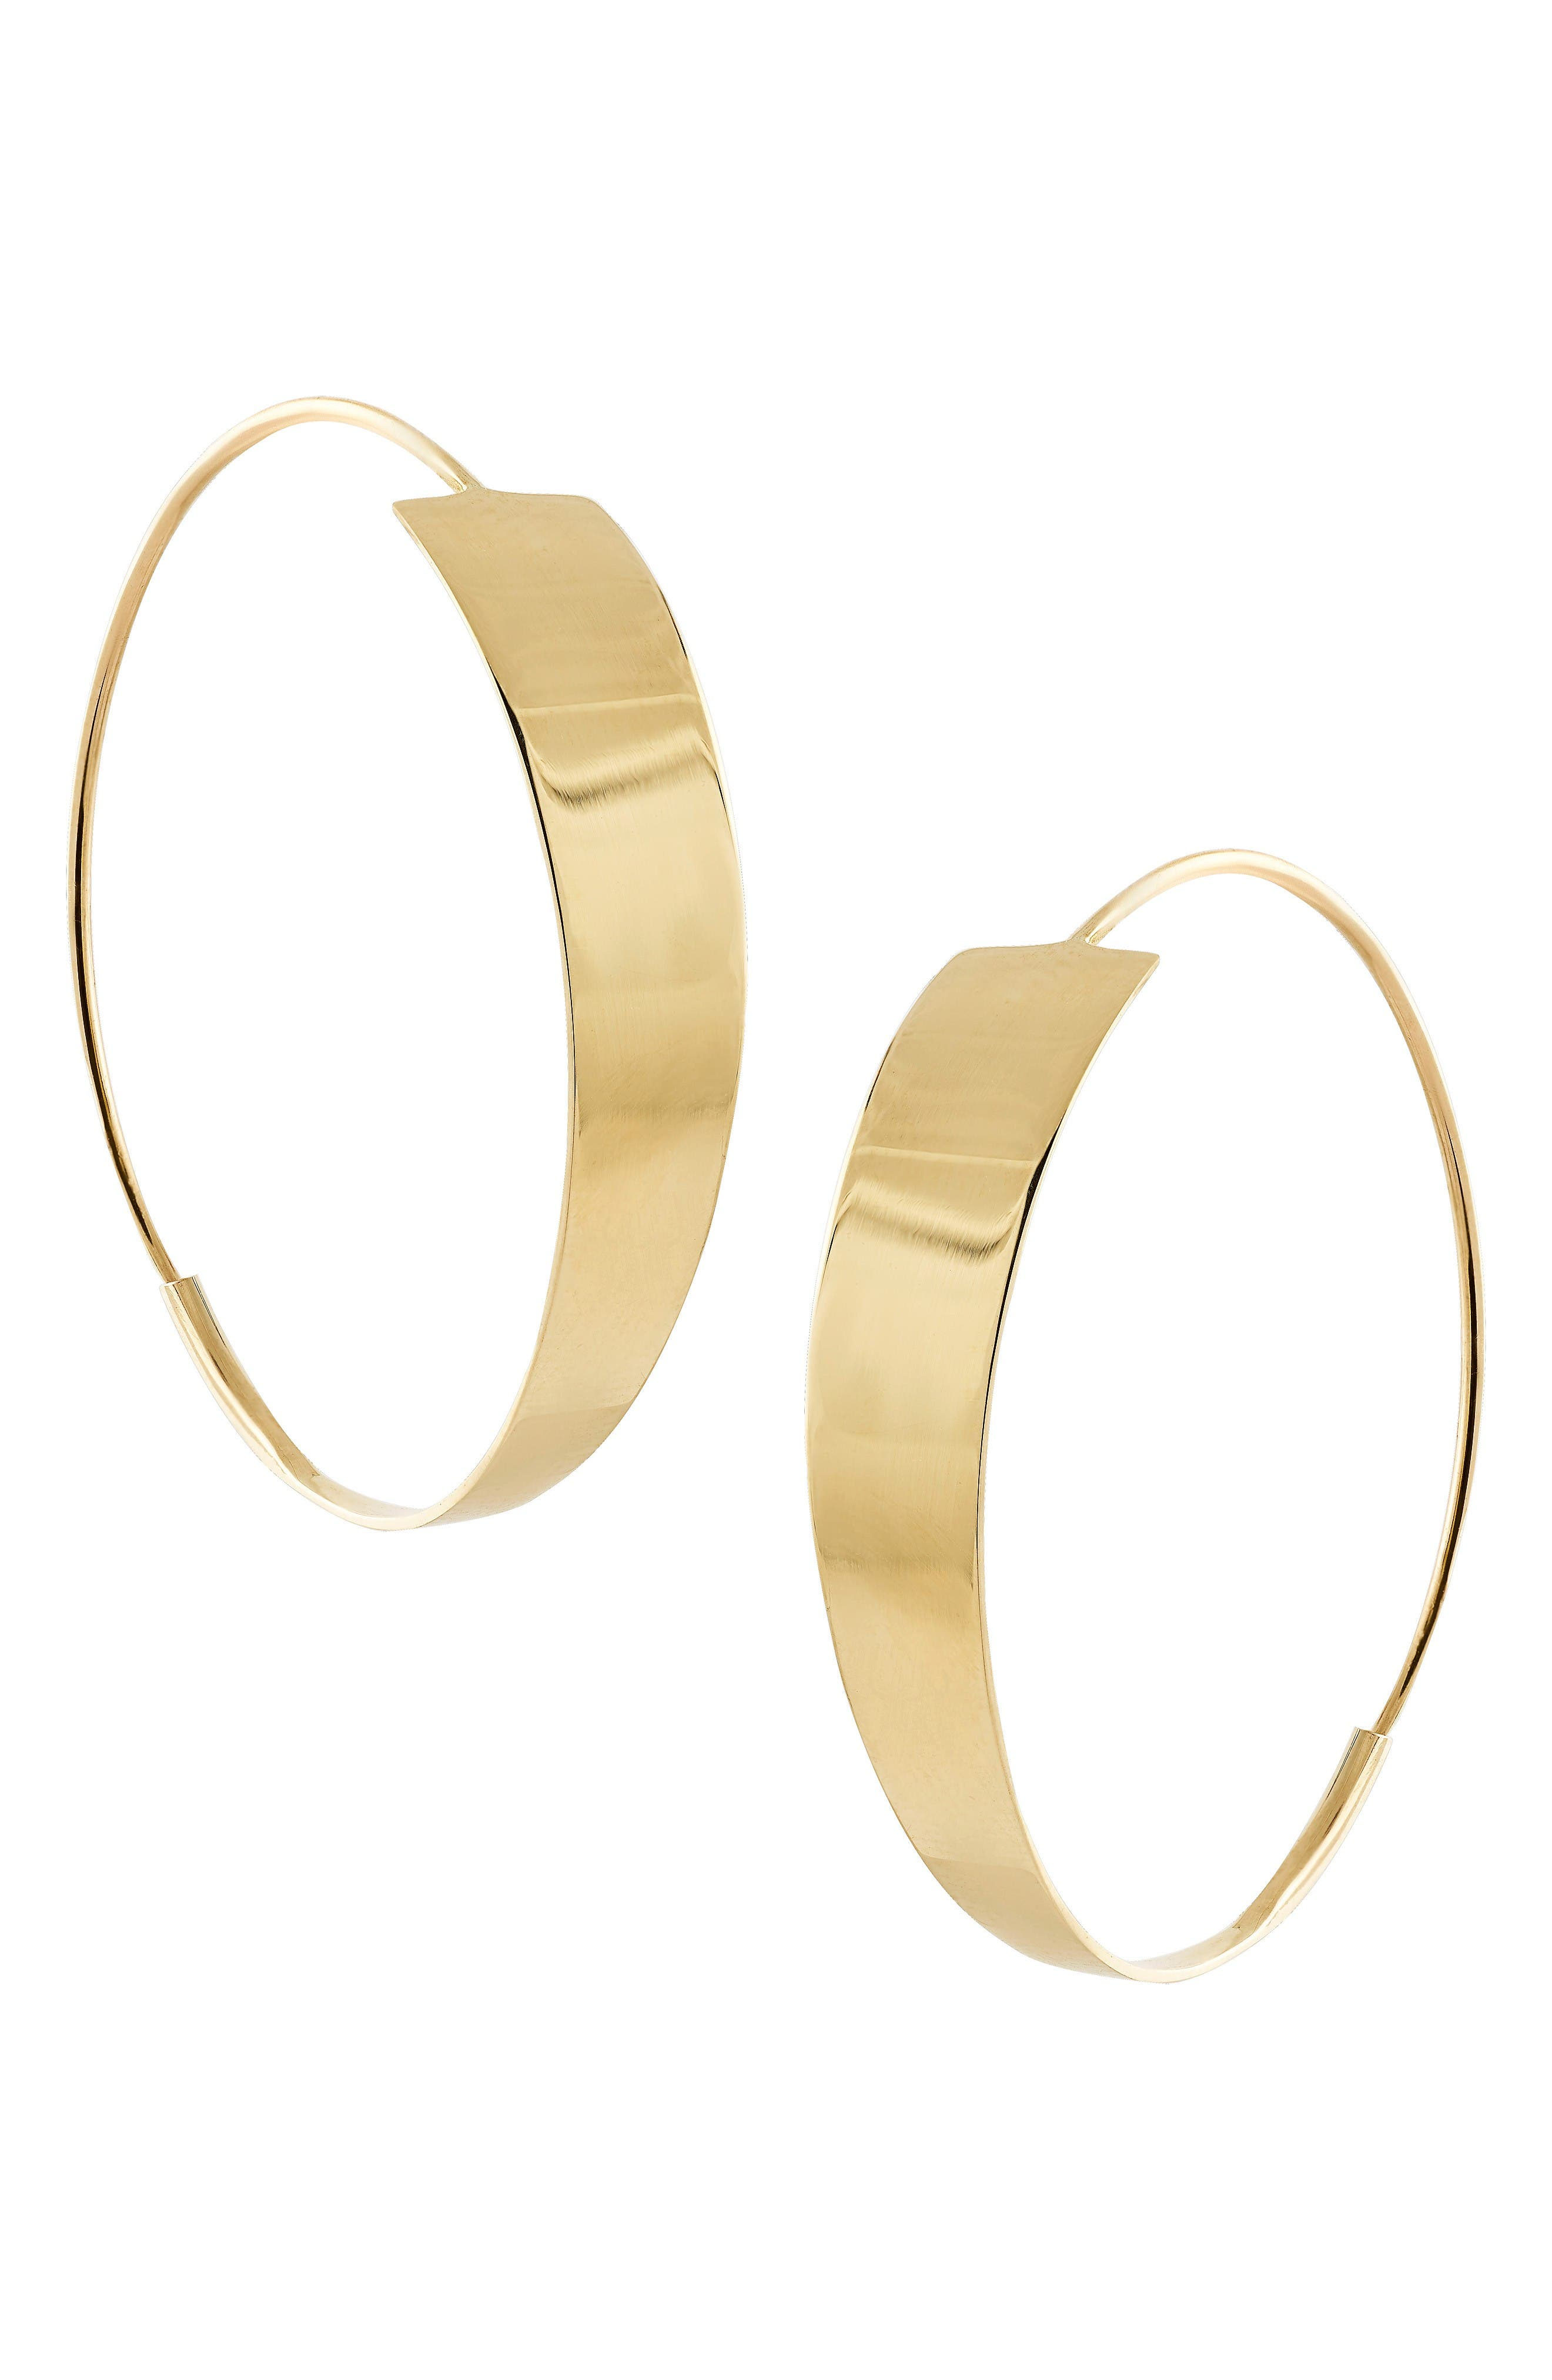 Bond Small Magic Hoop Earrings,                             Main thumbnail 1, color,                             Yellow Gold